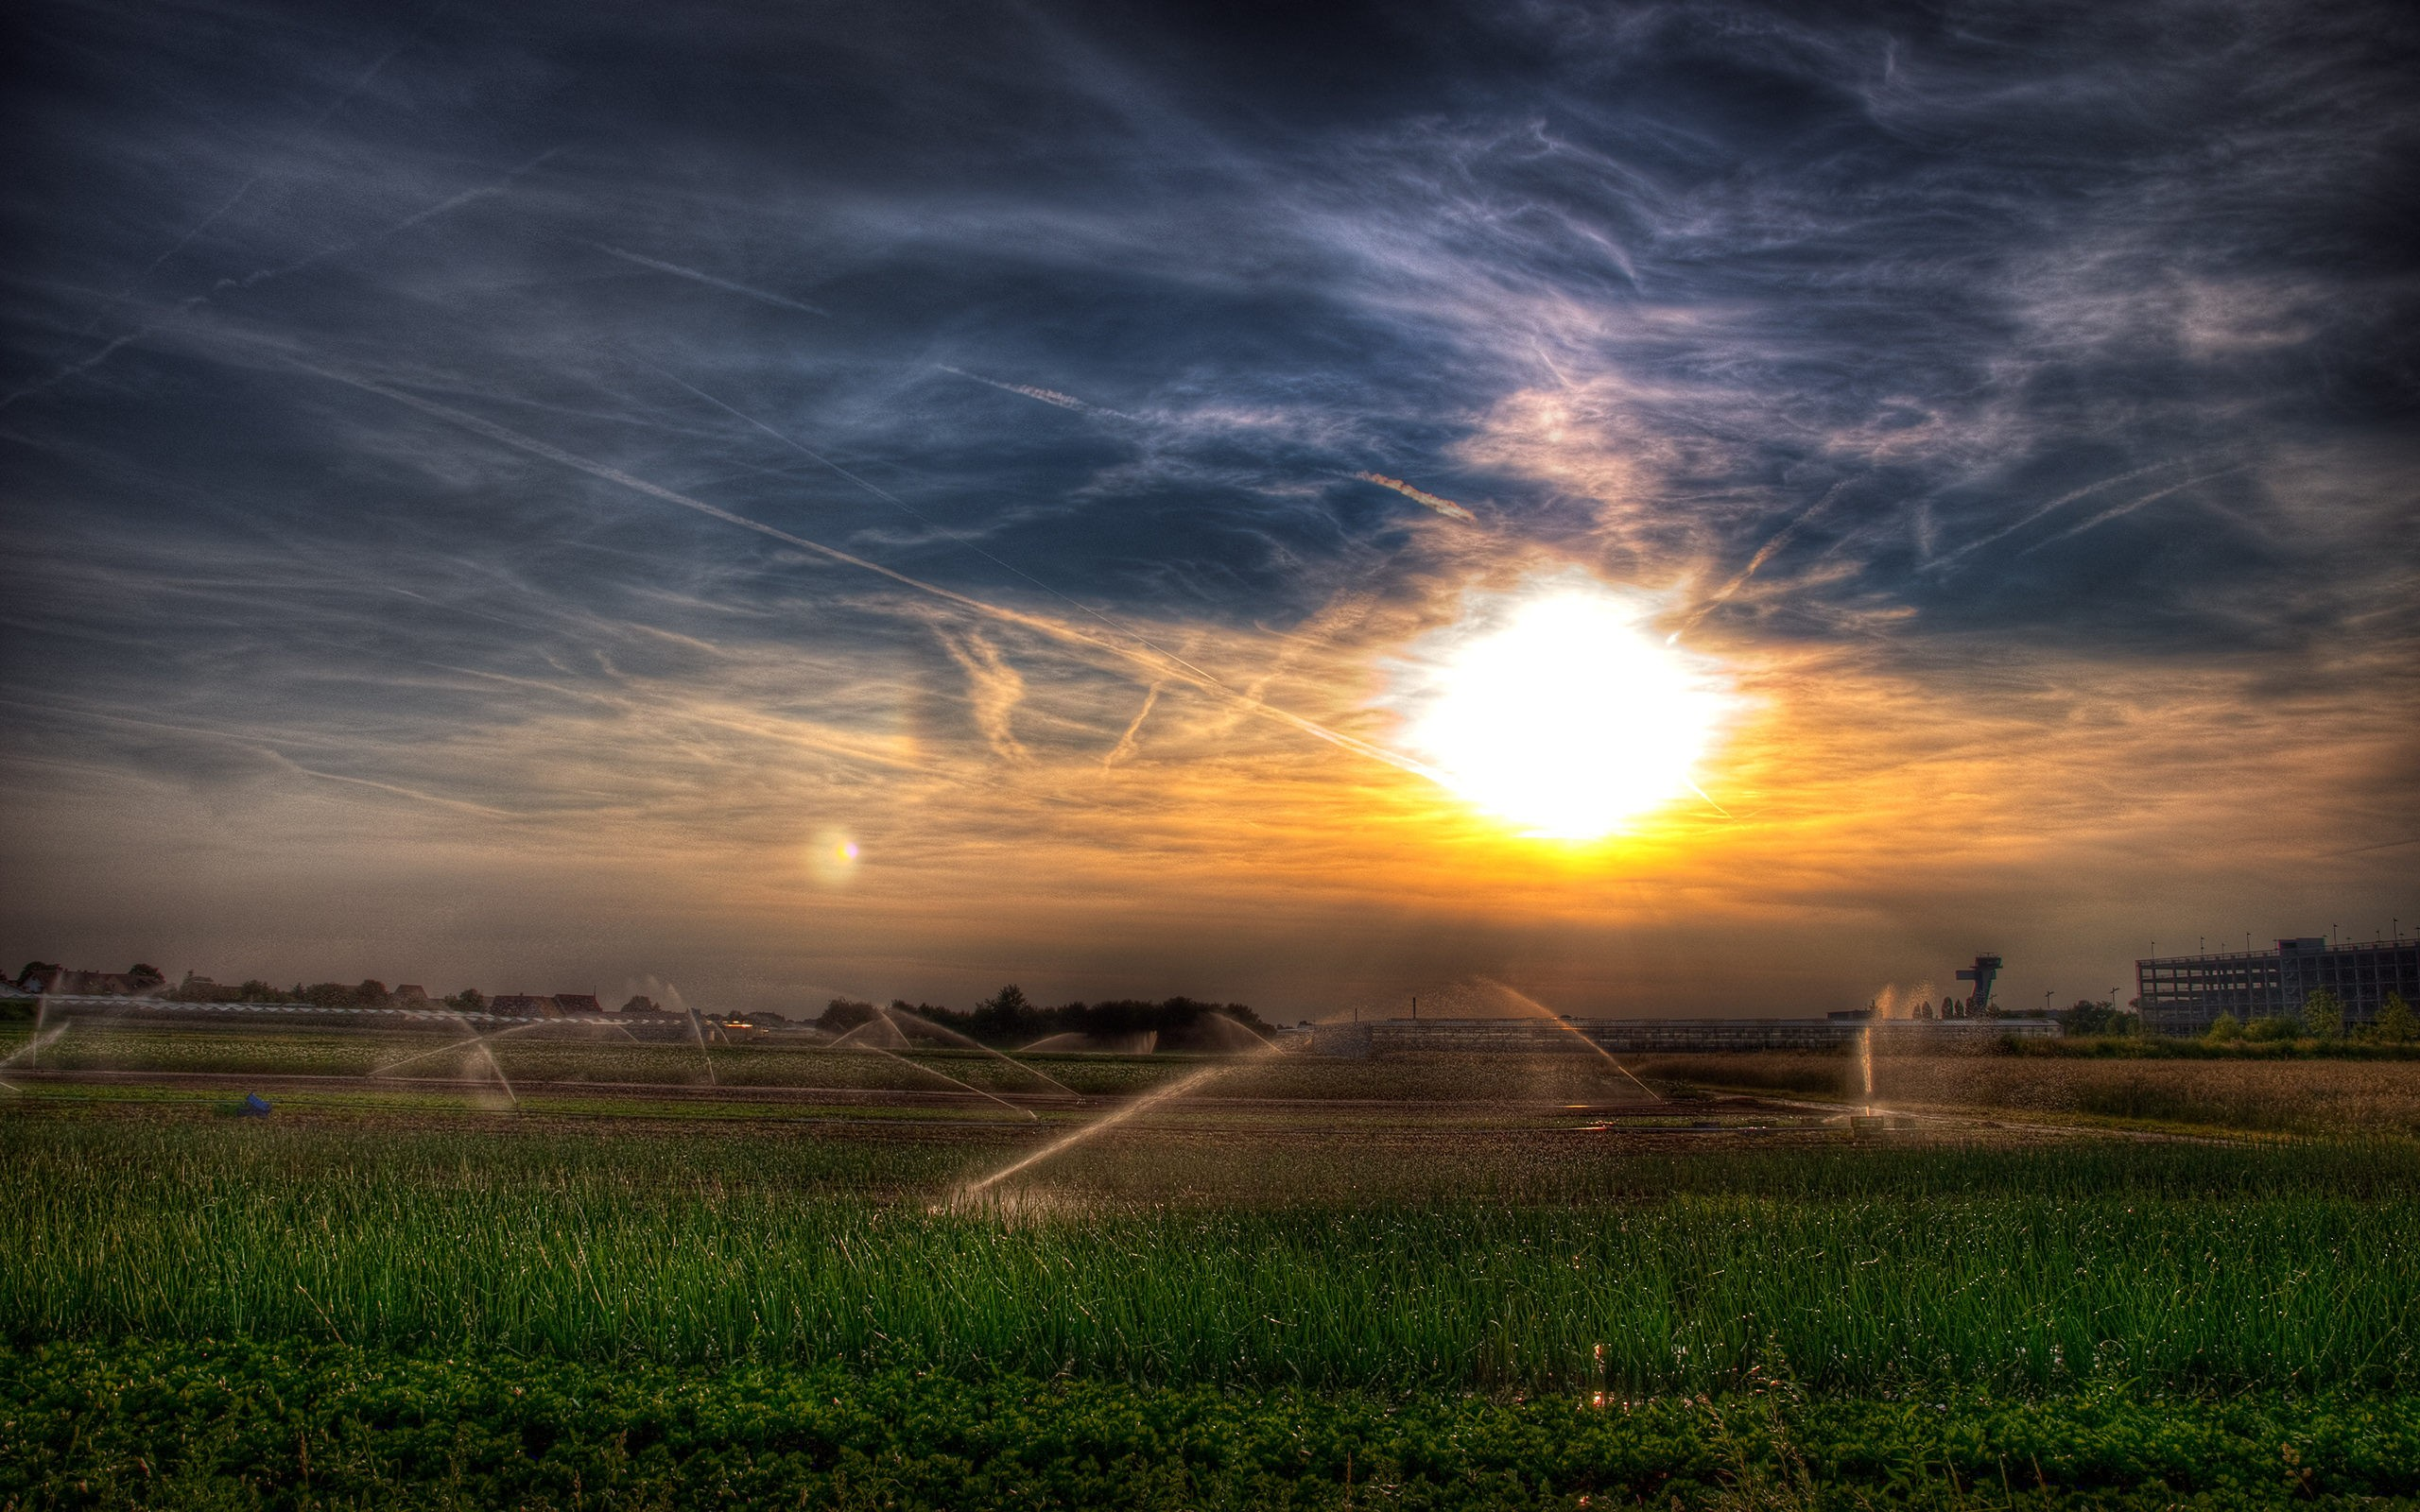 Water Irrigation System in the Field widescreen wallpaper Wide 2560x1600